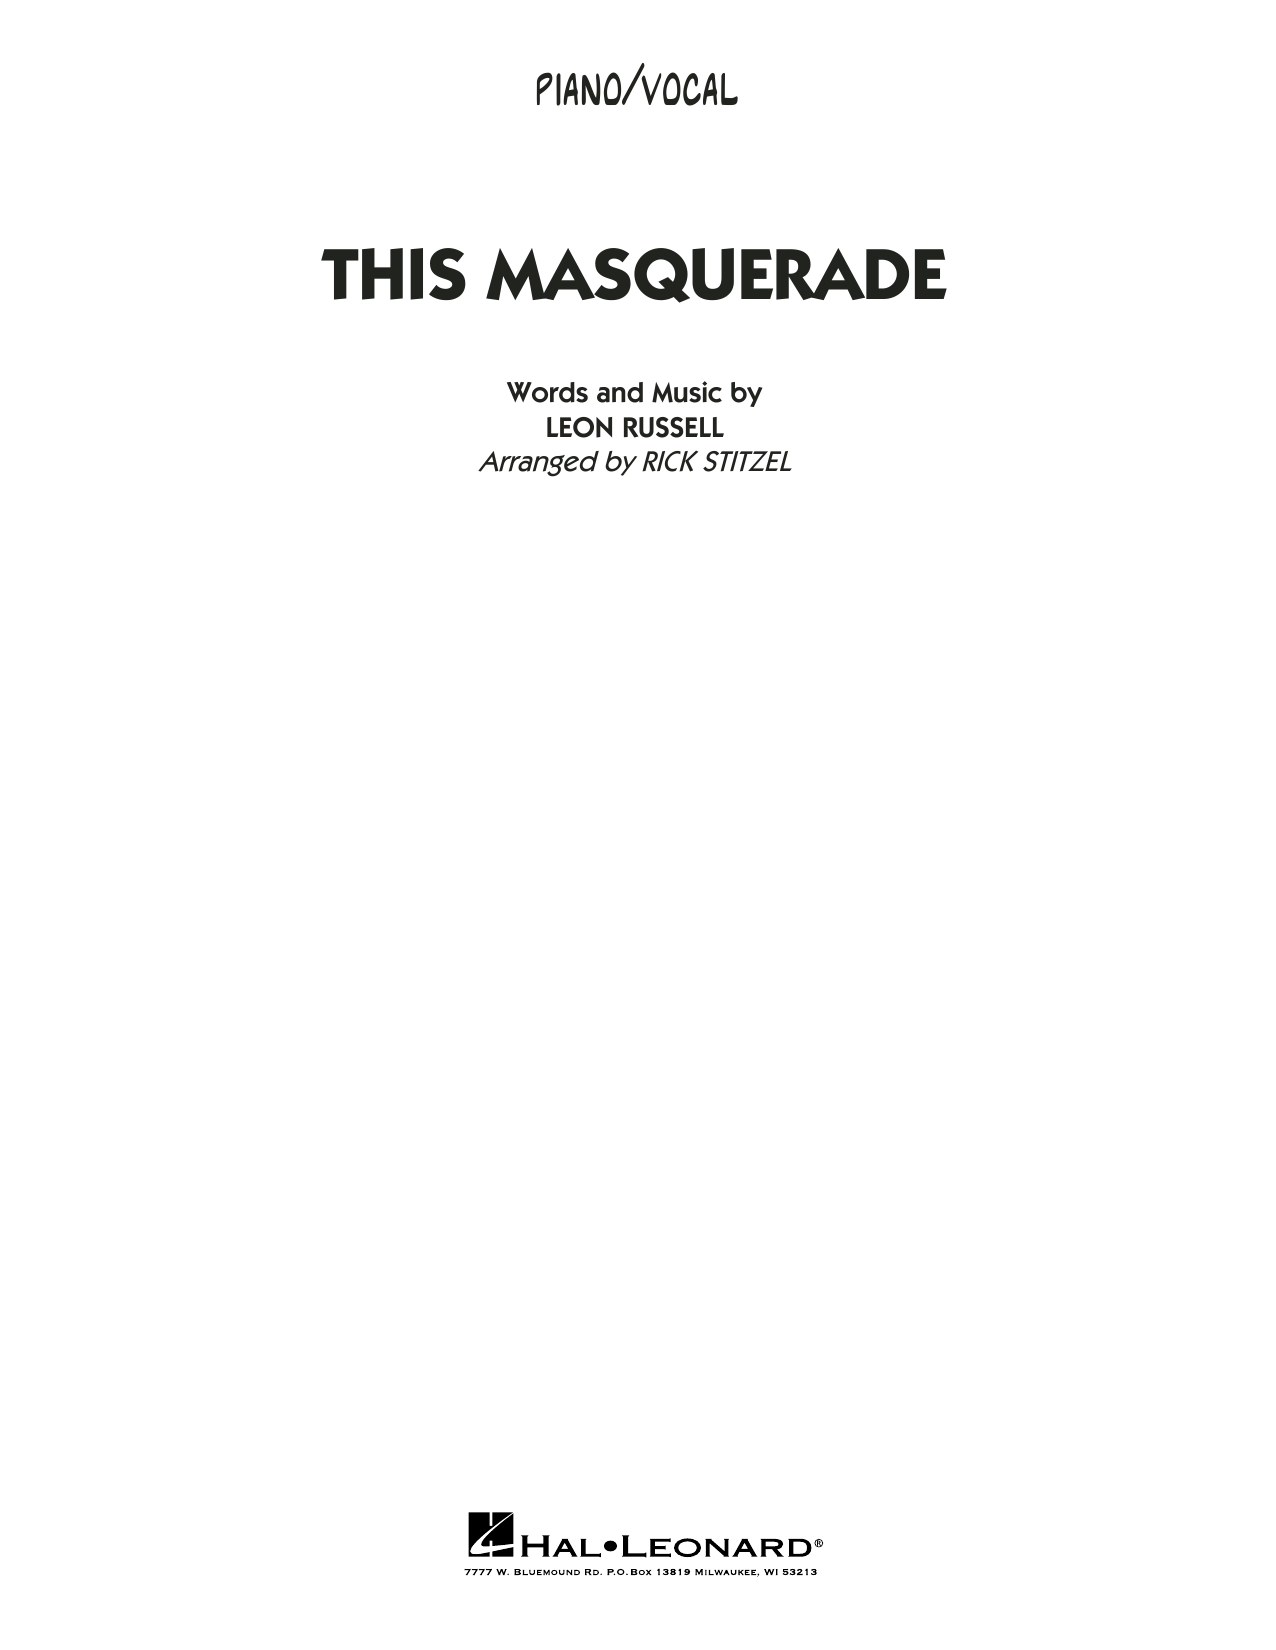 Leon Russell This Masquerade (arr. Rick Stitzel) - Piano/Vocal sheet music notes and chords. Download Printable PDF.